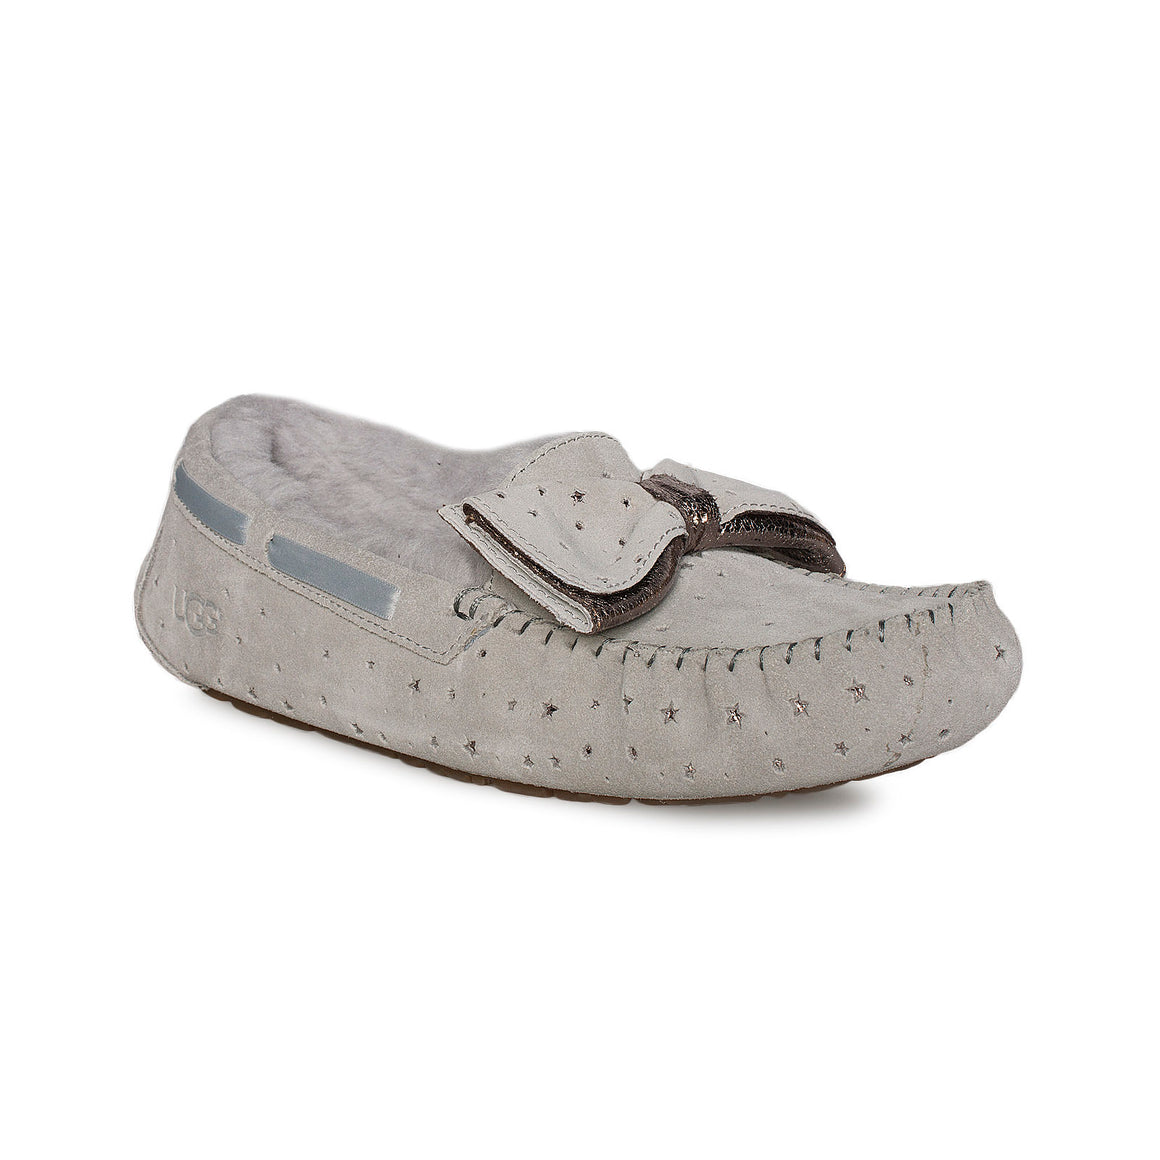 UGG Dakota Stargirl Seal Slippers - Women's